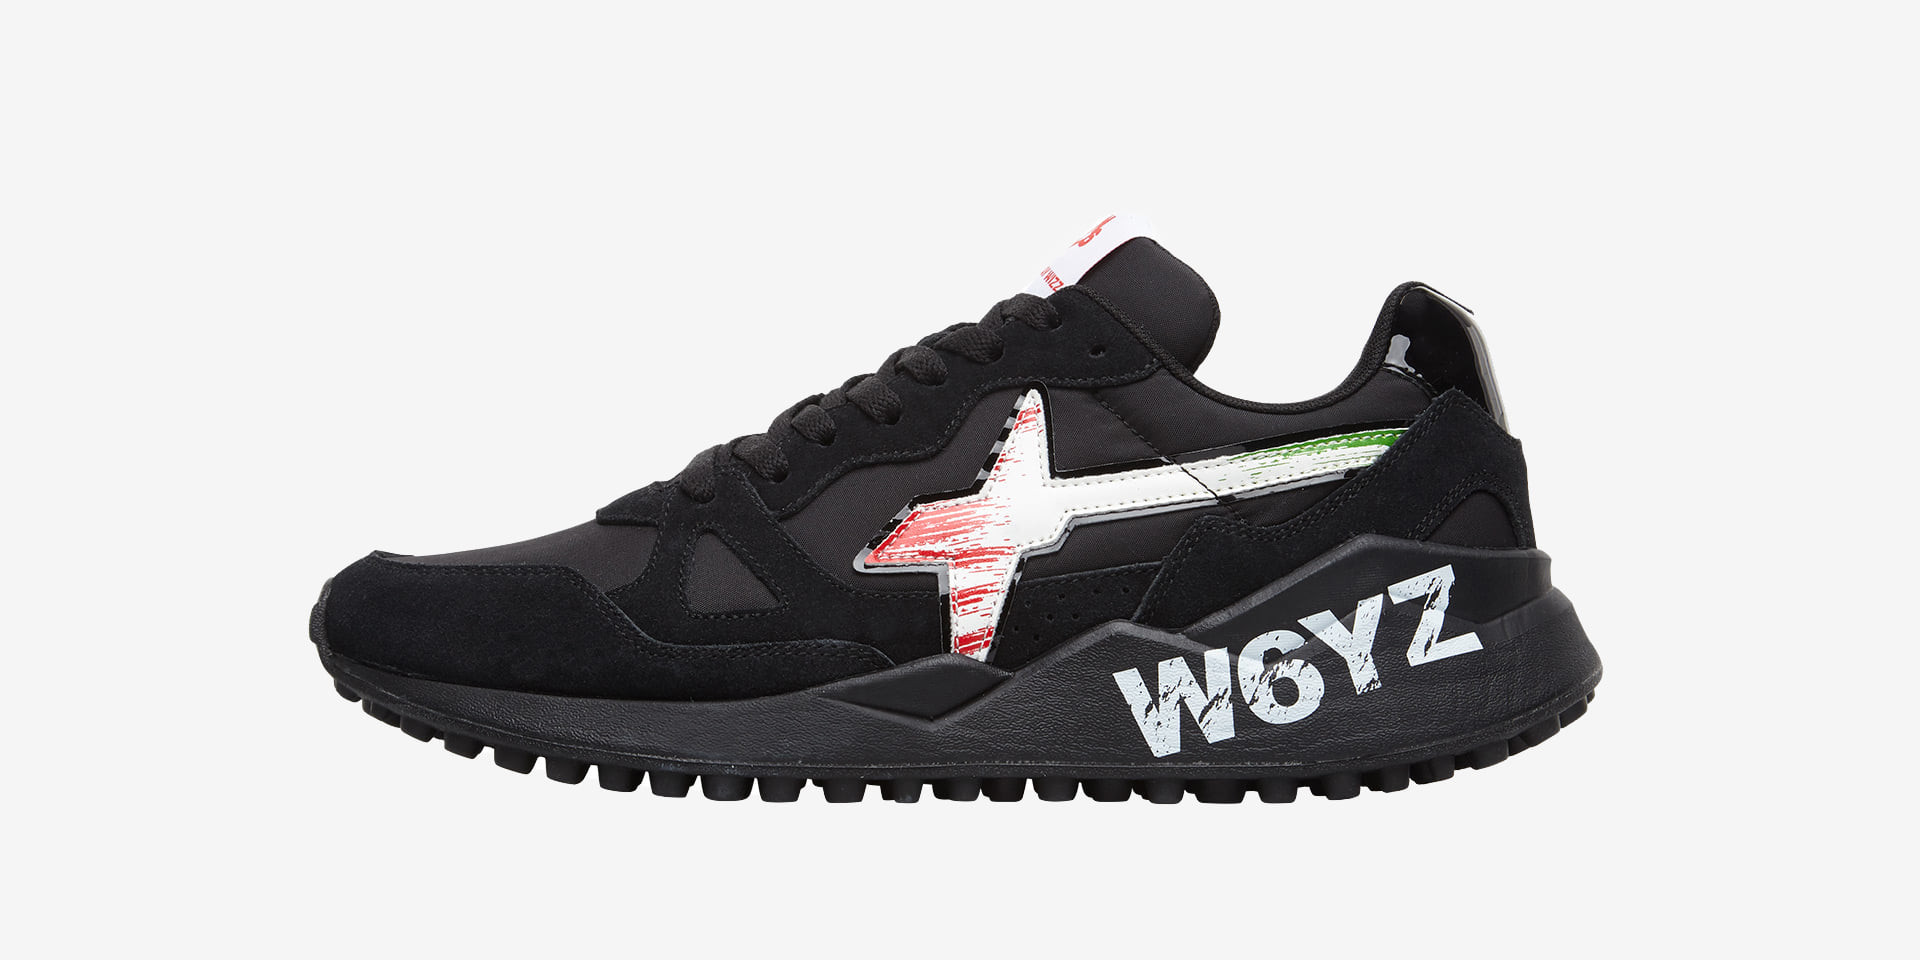 FLAG.I. - Sneakers in leather and nylon - Black